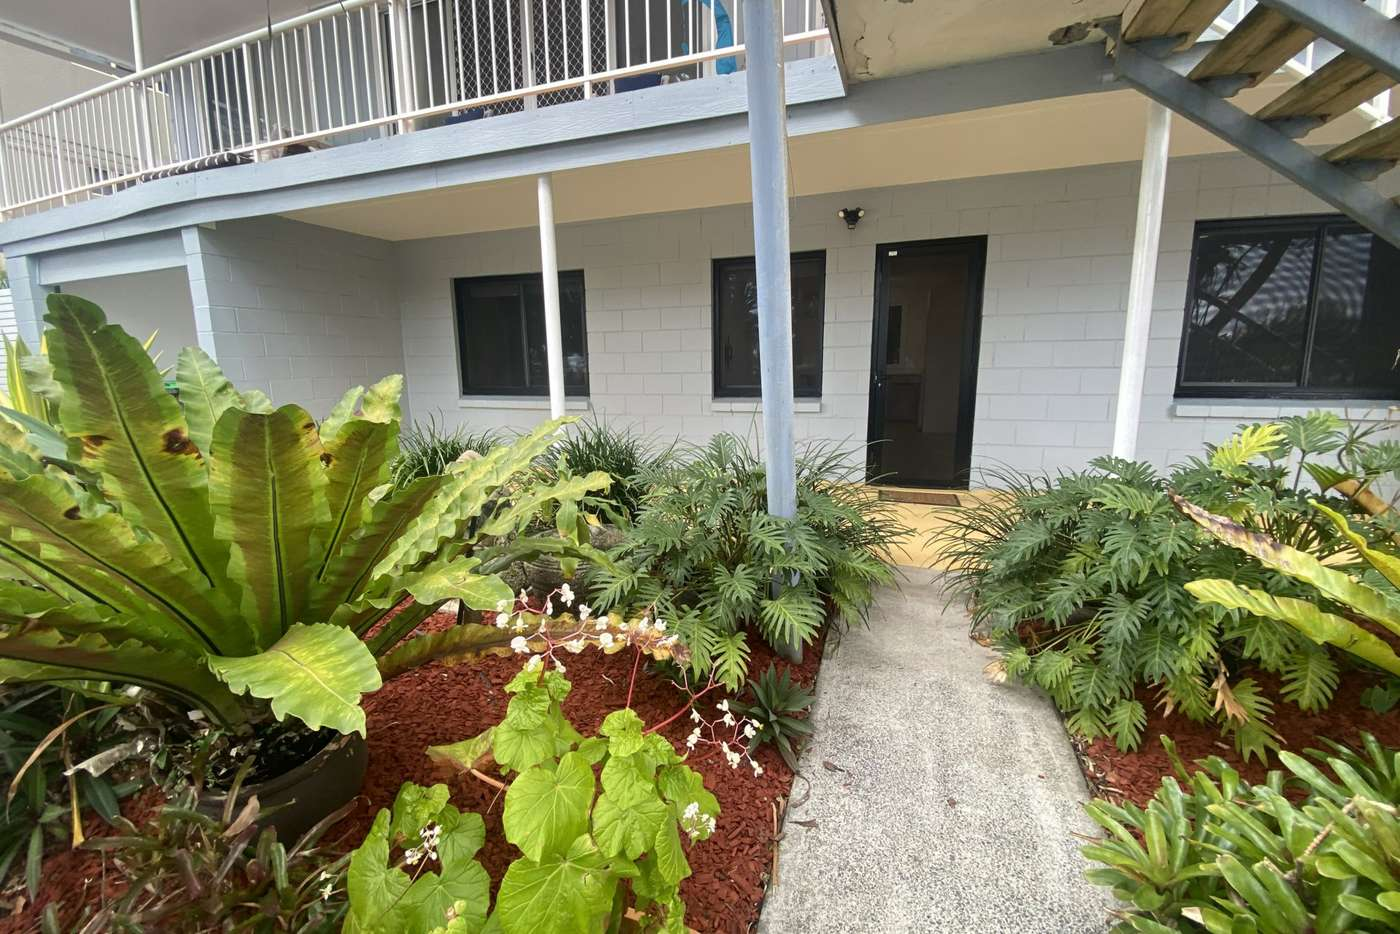 Main view of Homely unit listing, 1/4 Marine Parade, Kingscliff NSW 2487